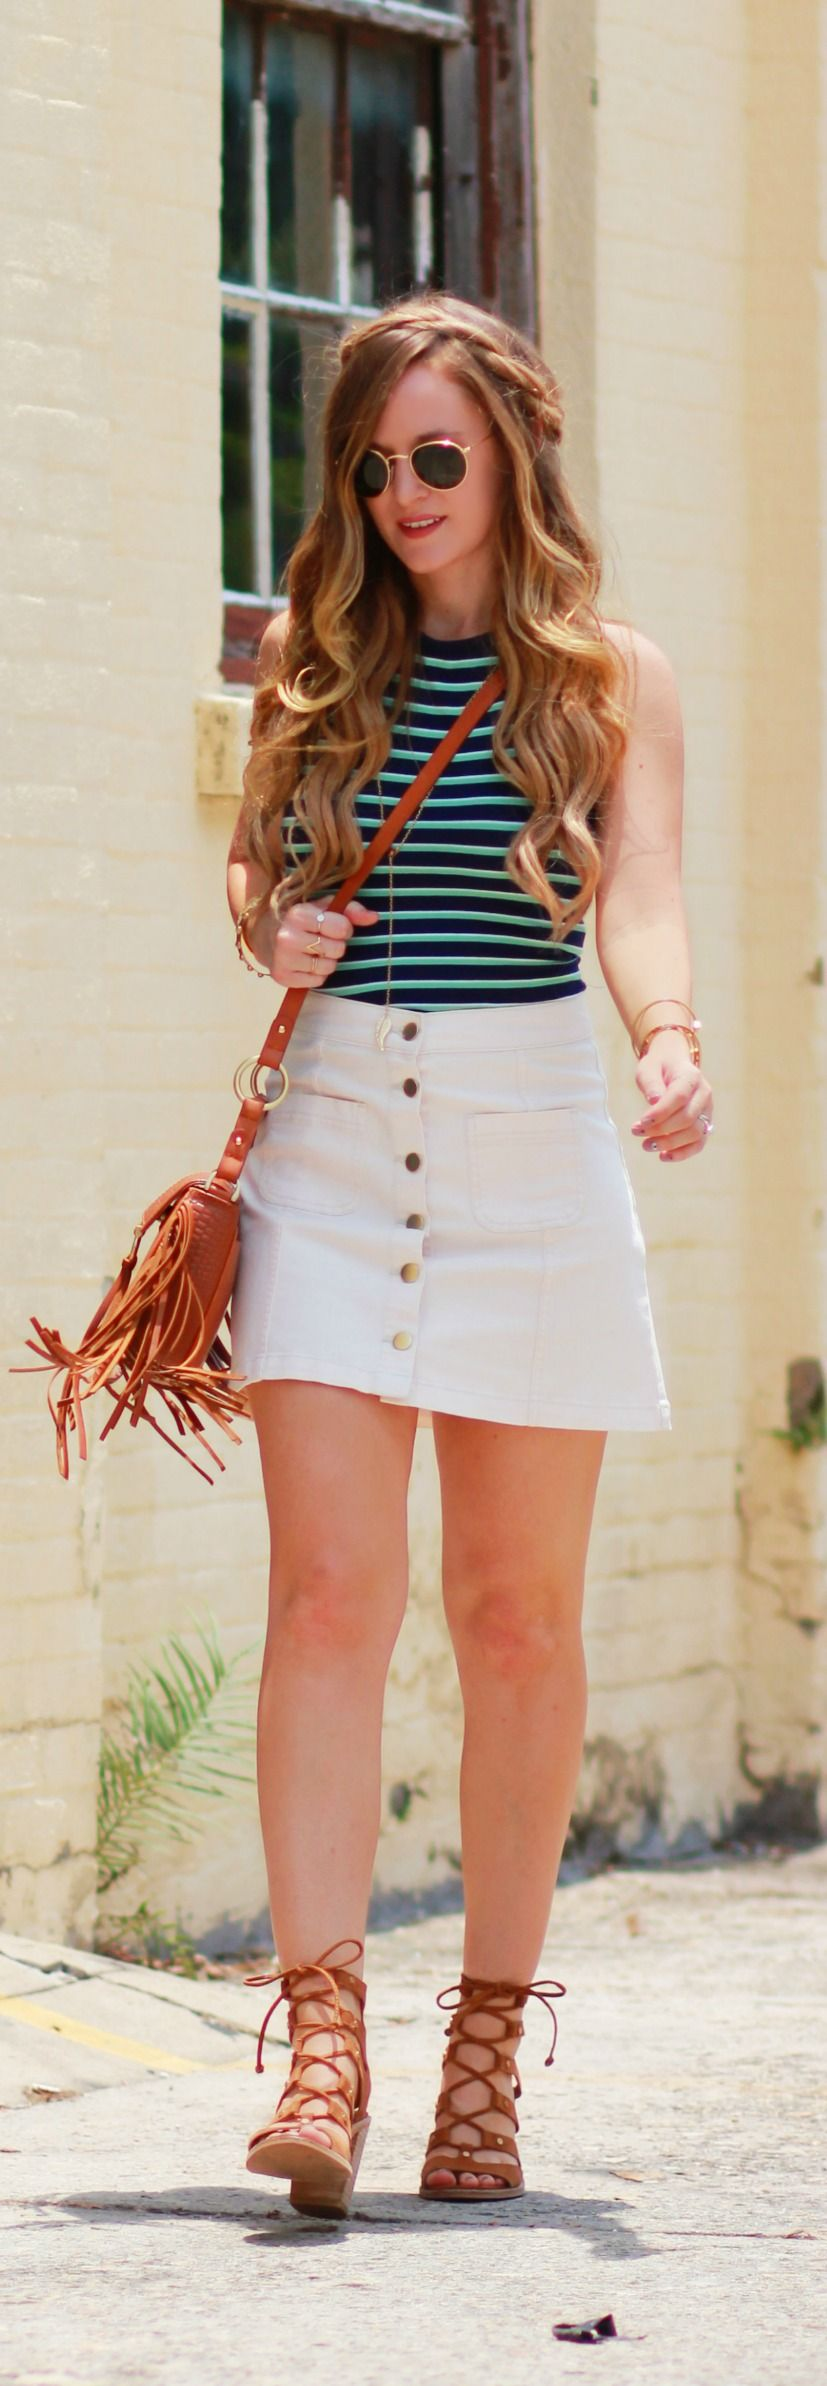 Striped halter top styled with white button up skirt and lace up sandals, casual summer outfit